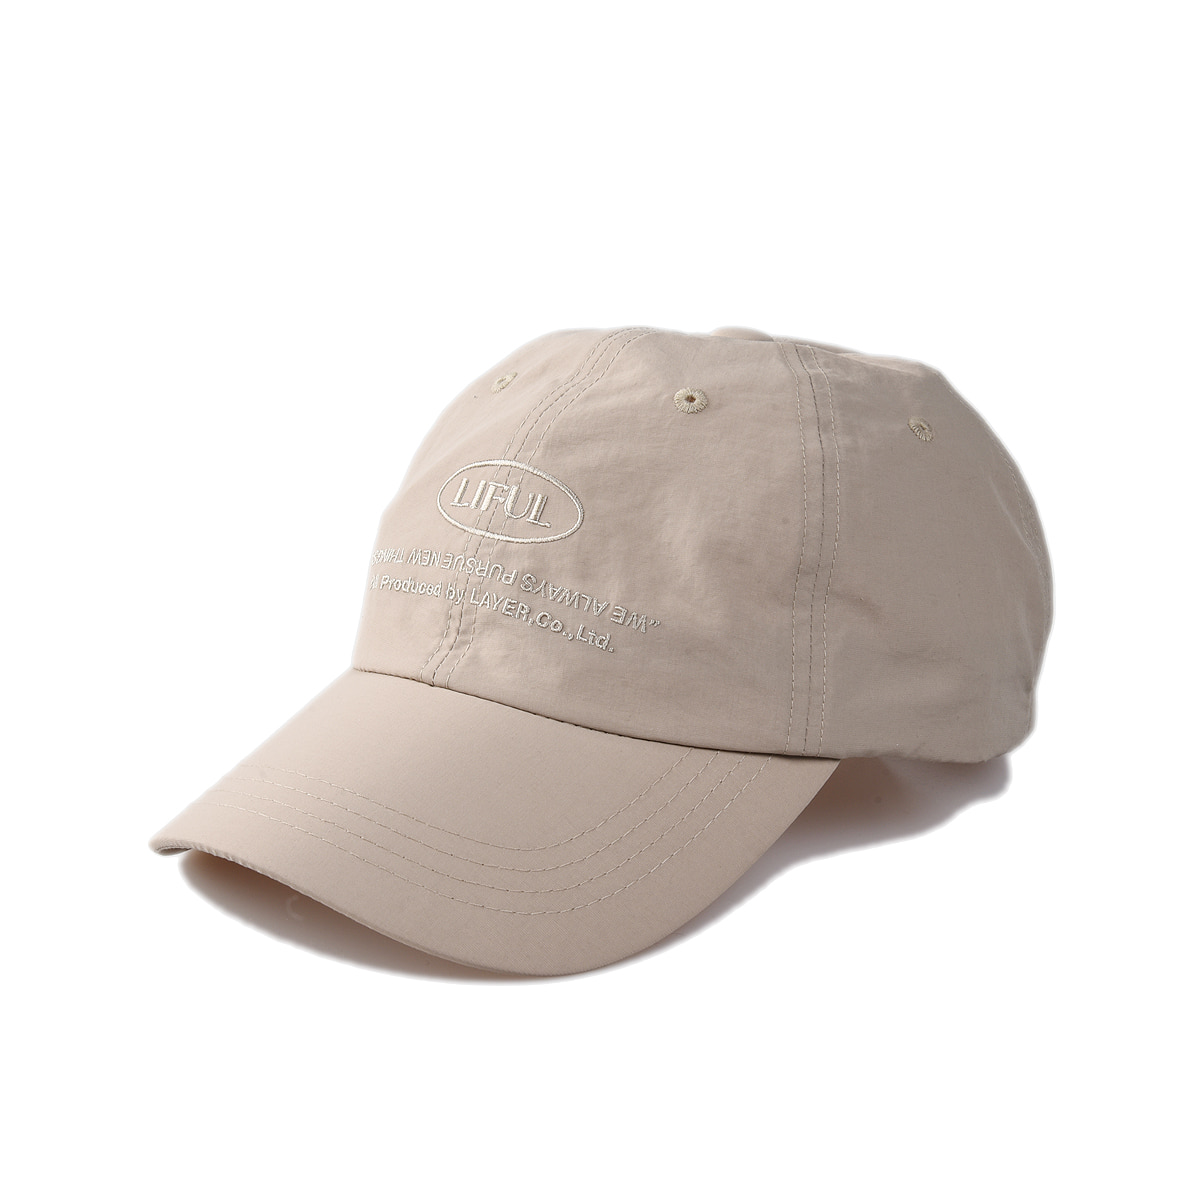 "LIFUL Comfort 6 Panel Cap ""Beige"""